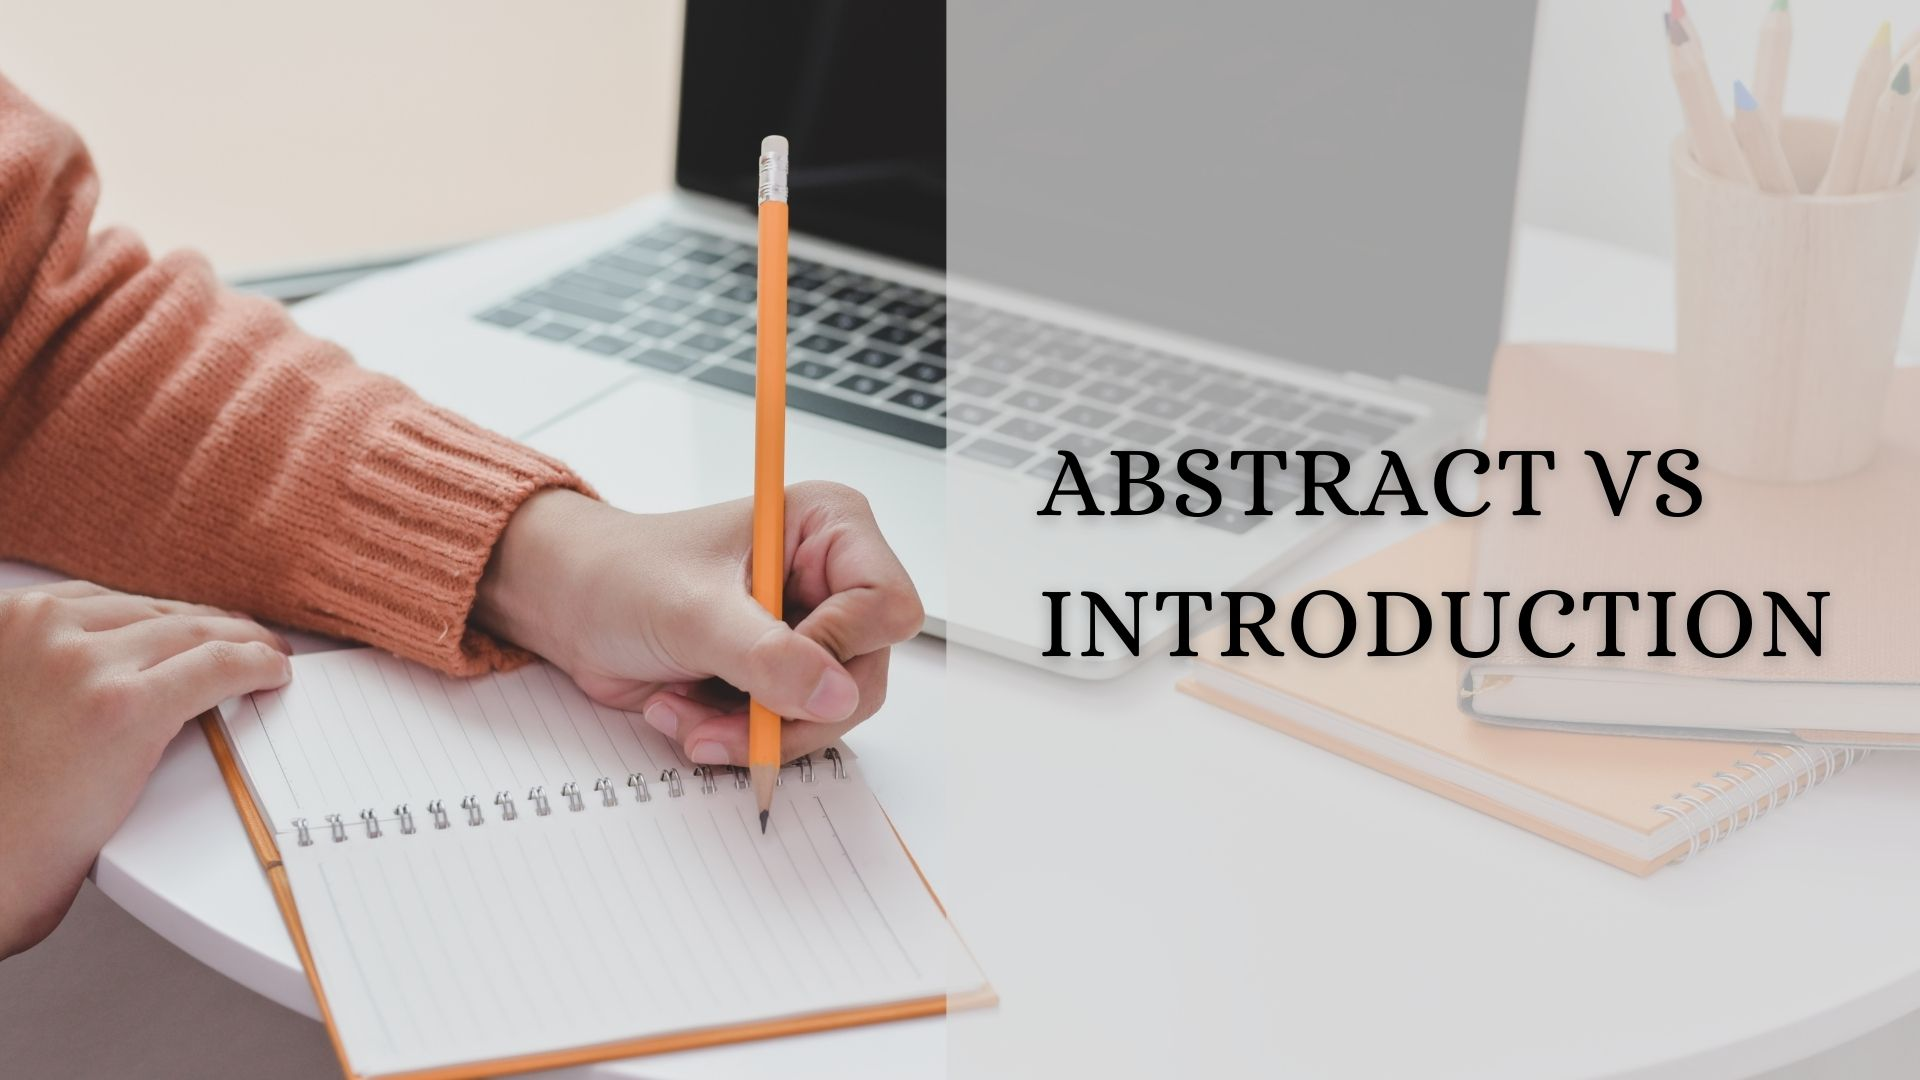 Abstract Vs Introduction: Key Similarities and Differences